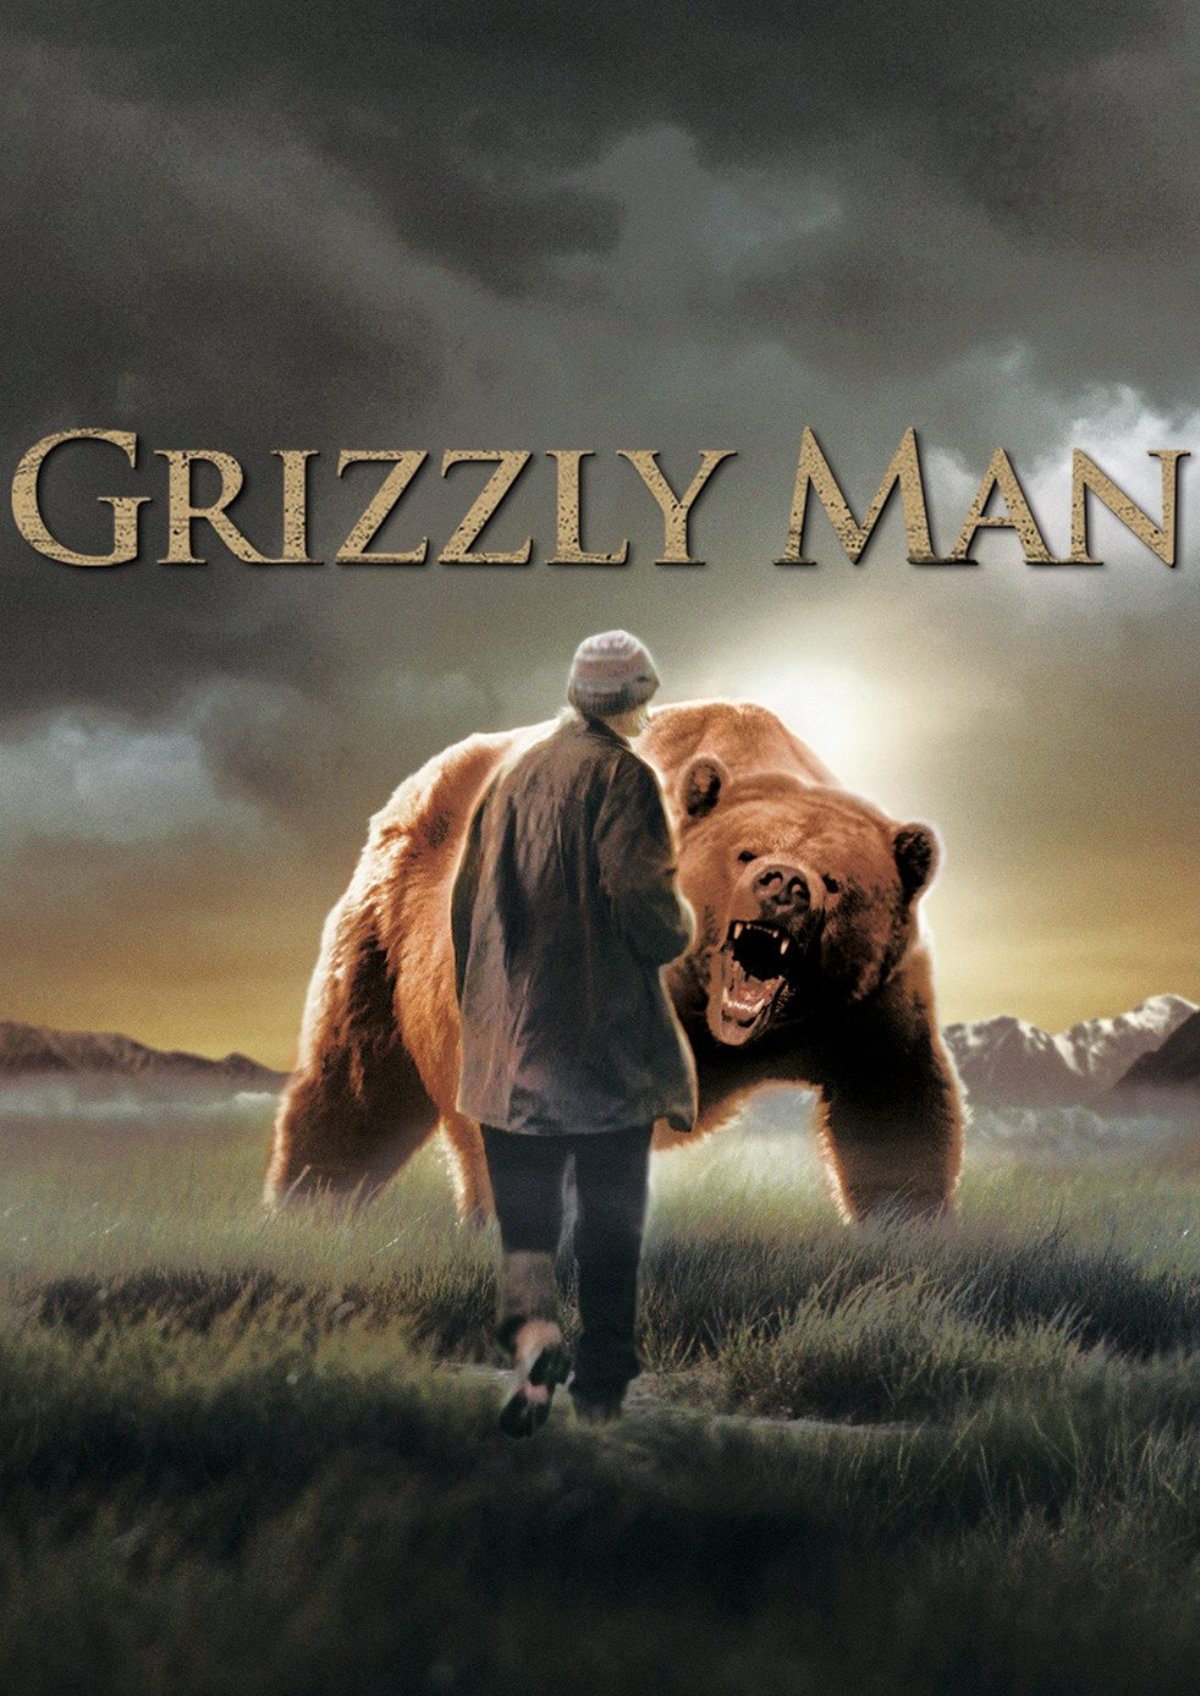 'Grizzly Man' movie poster